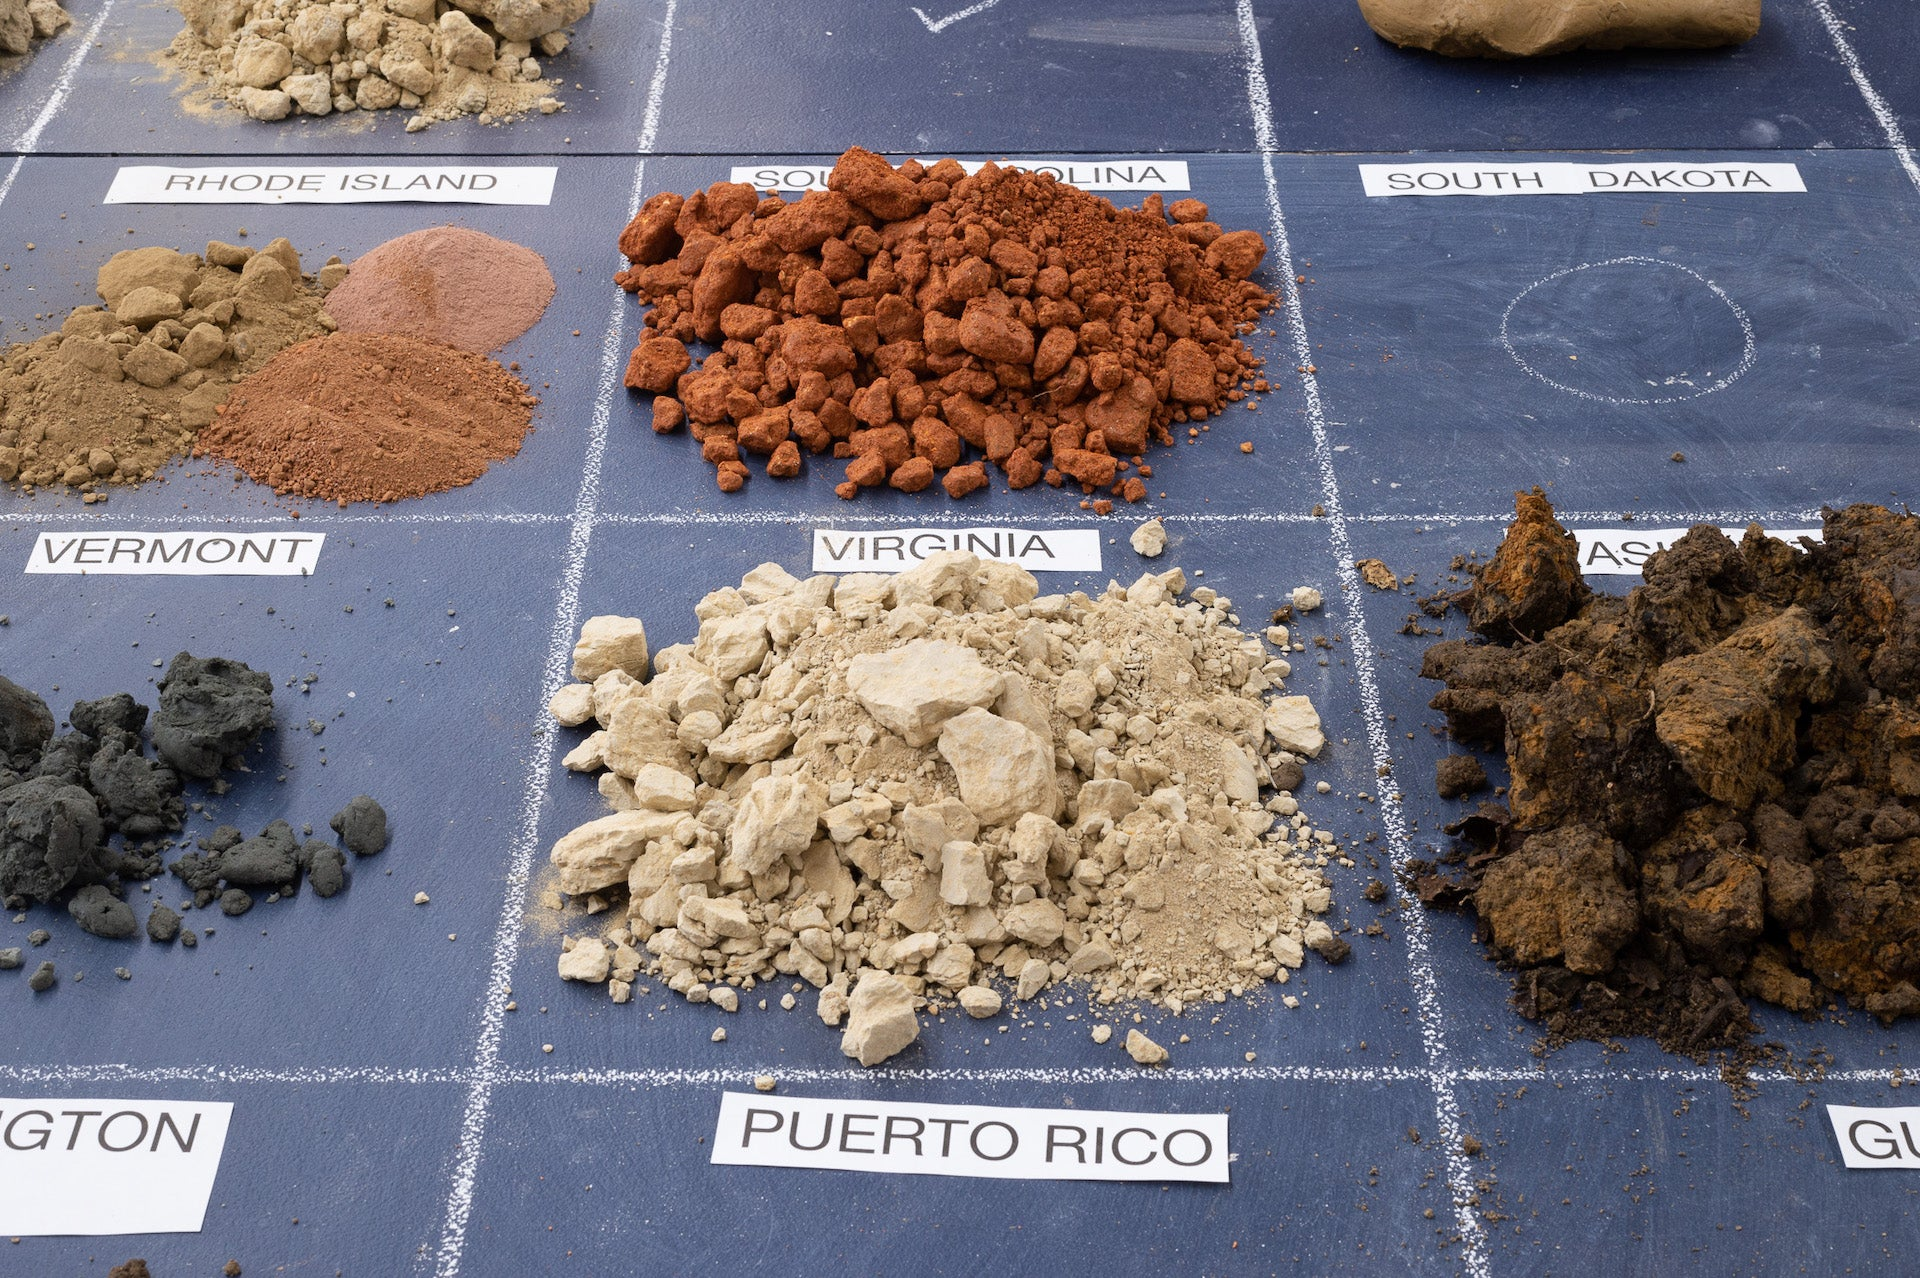 Samples of clay from the 56 US Territories for Common Ground. Photo © Erik Benjamins; Courtesy of Friedman Benda and Adam Silverman